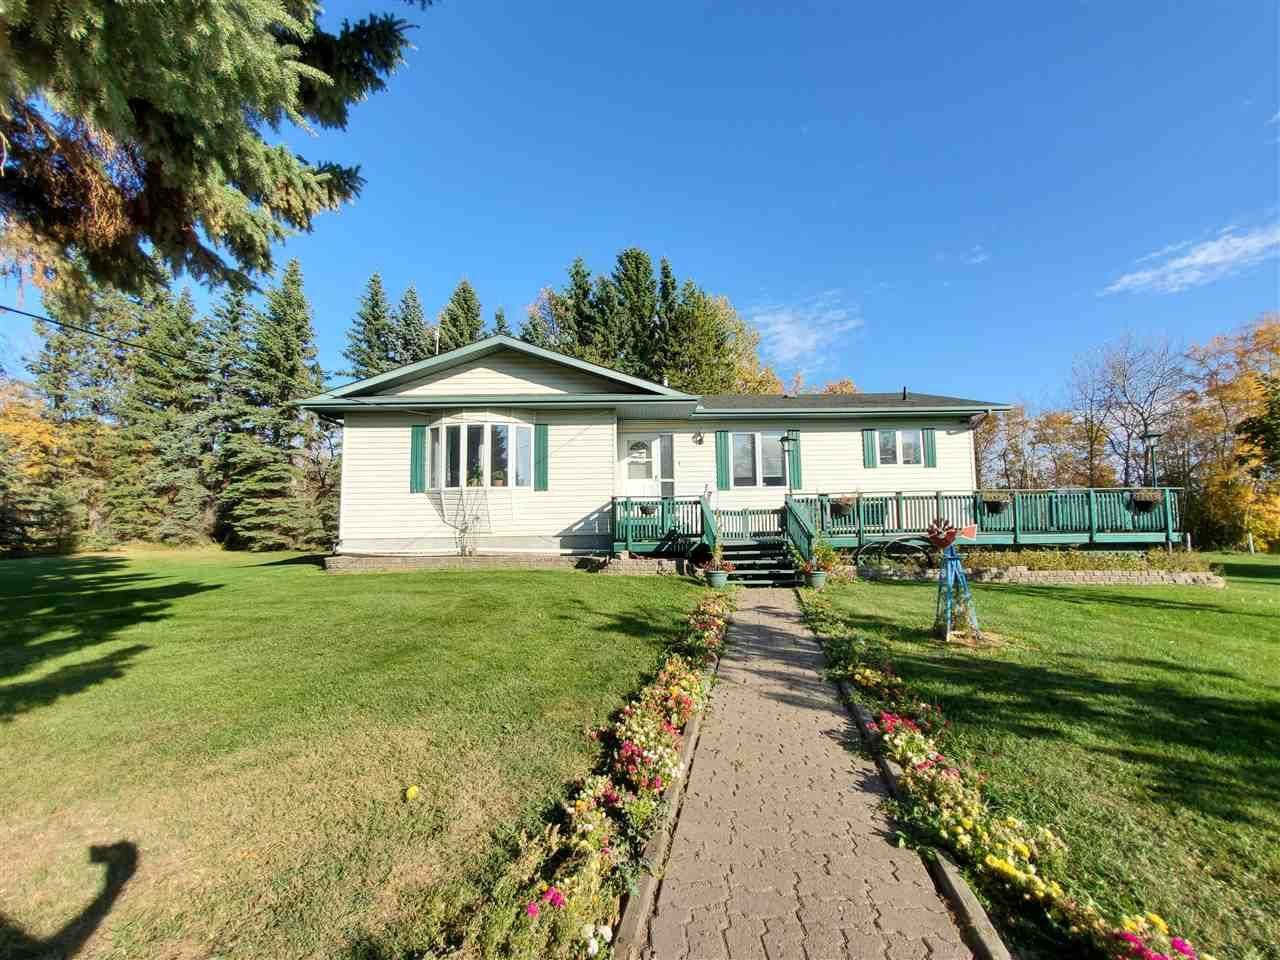 Photo 30: Photos: 265073 Twp Rd 472A: Rural Wetaskiwin County House for sale : MLS®# E4216435